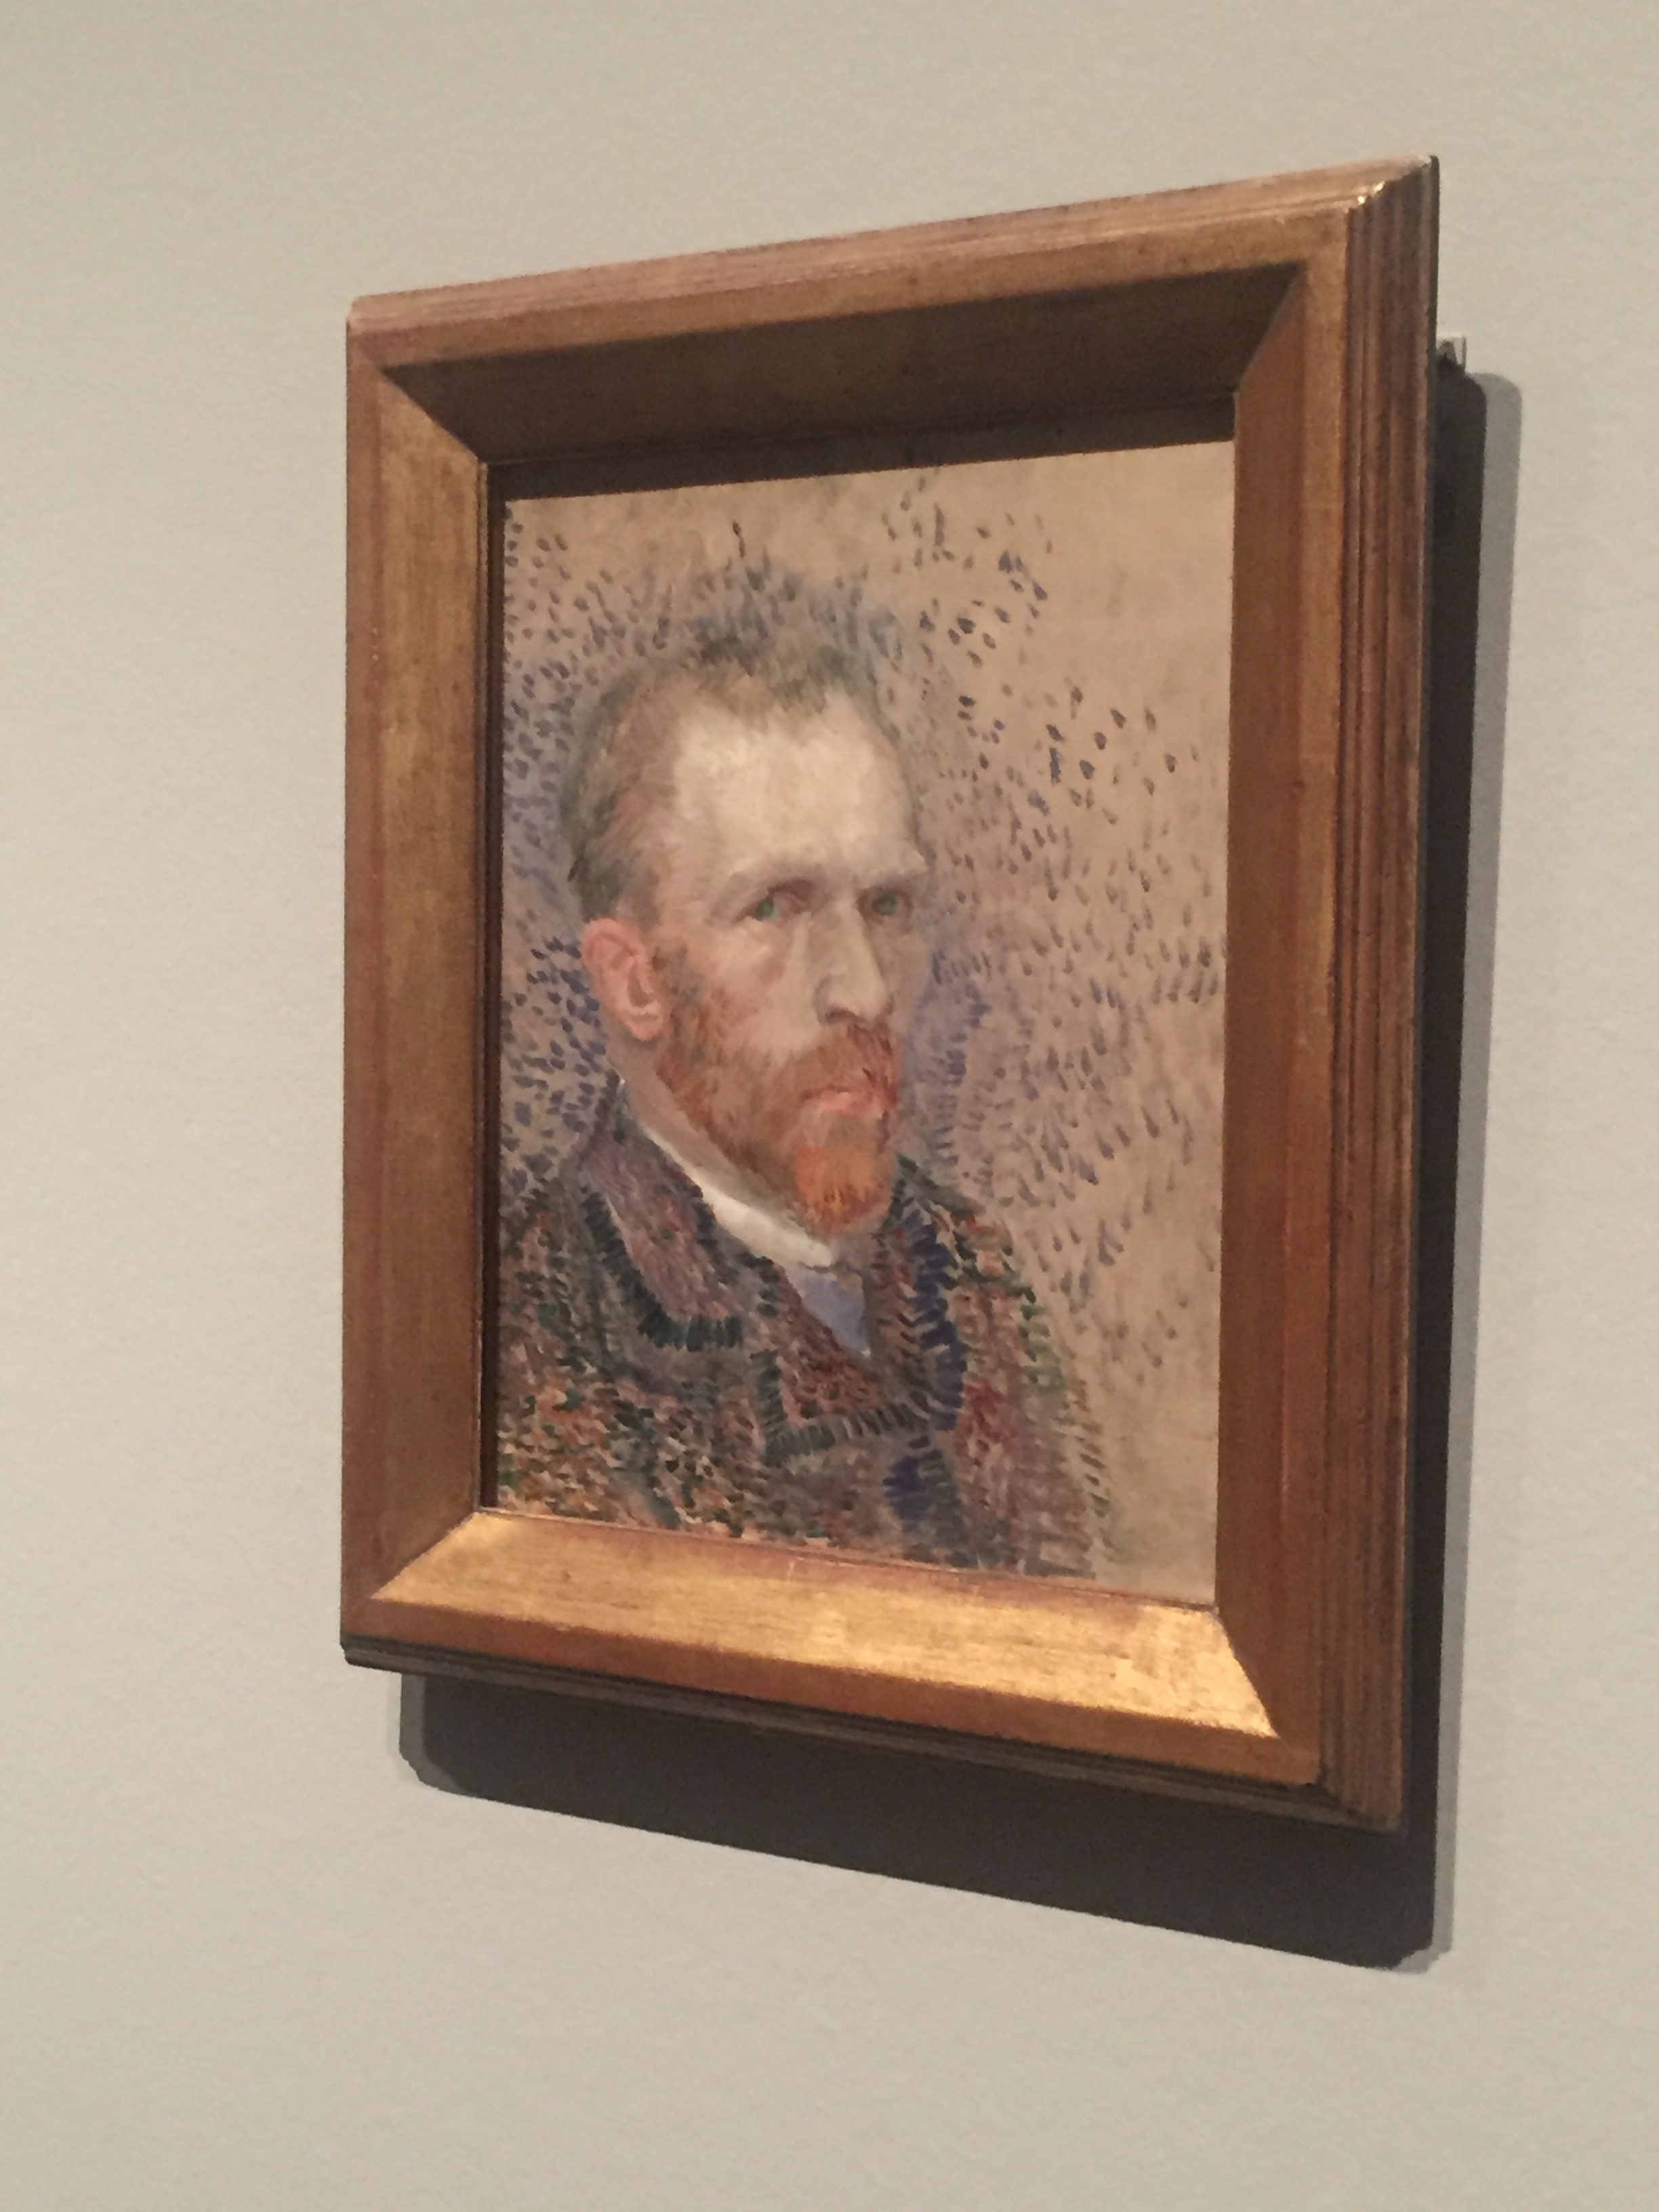 Vincent Van Gogh being real